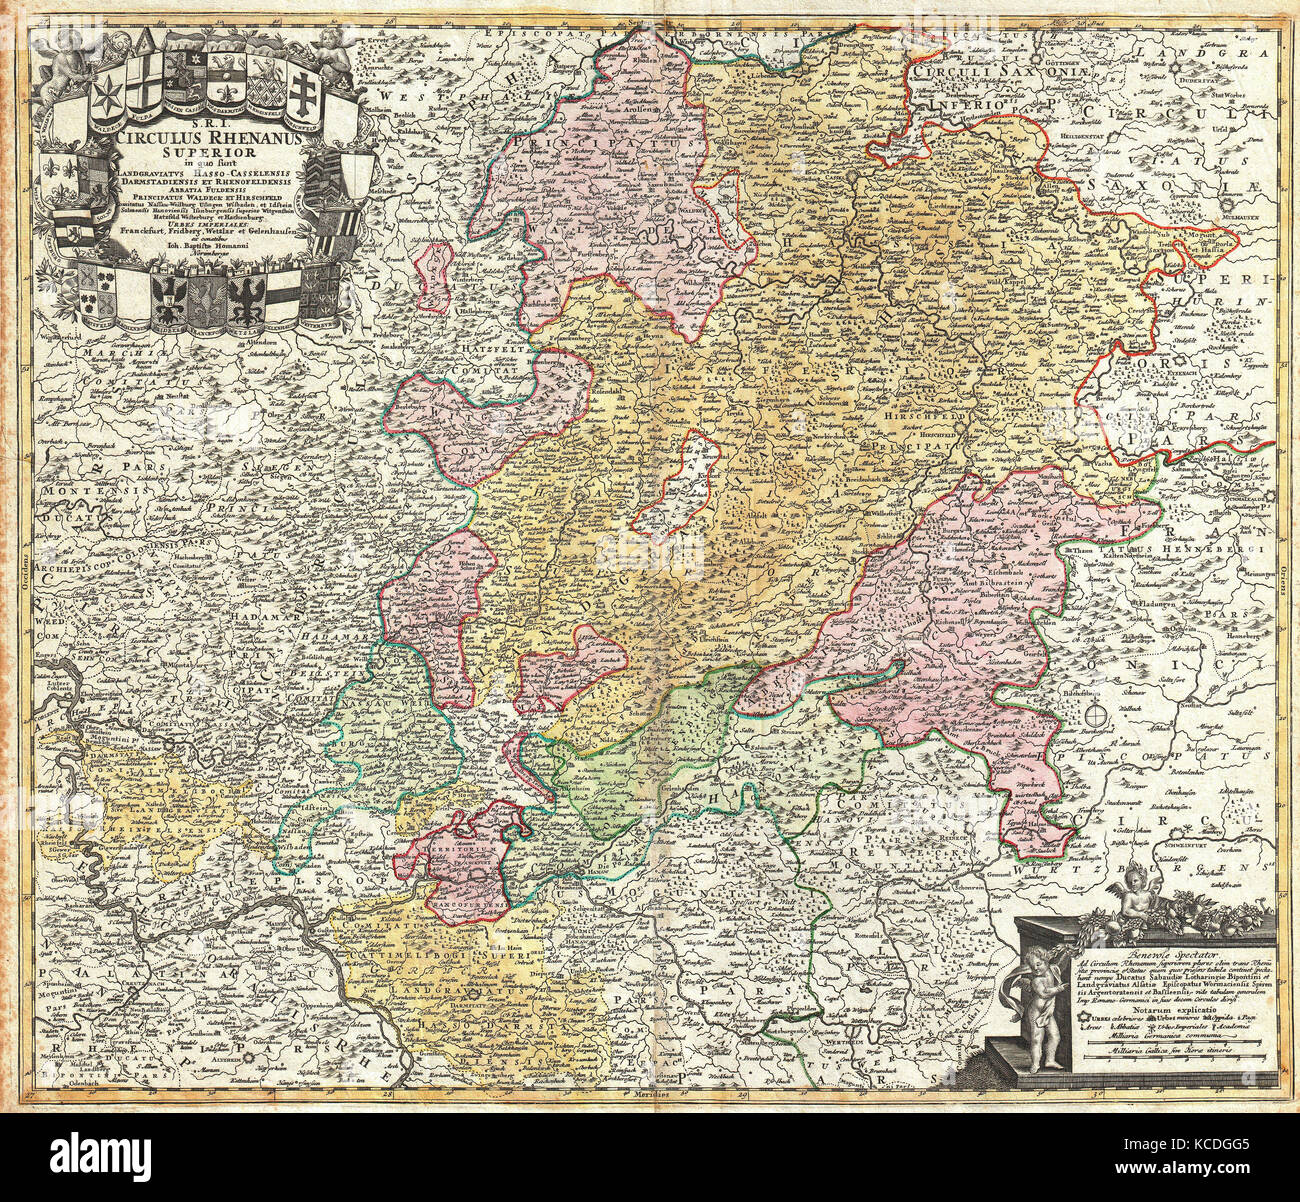 Map Of Frankfurt on map of hohenzollern, map of schwaben, map of north german confederation, map of istanbul, map of rovaniemi, map of geneva, map of ruwais, map of council of constance, map of lusatia, map of cochem, map of baumholder, map of venice marco polo, map of raetia, map of monchengladbach, map of lyon, map of hoorn, anne frank, map of tampere, map of marburg, map of durnstein, map of dordrecht, zürich, frankfurt international airport,